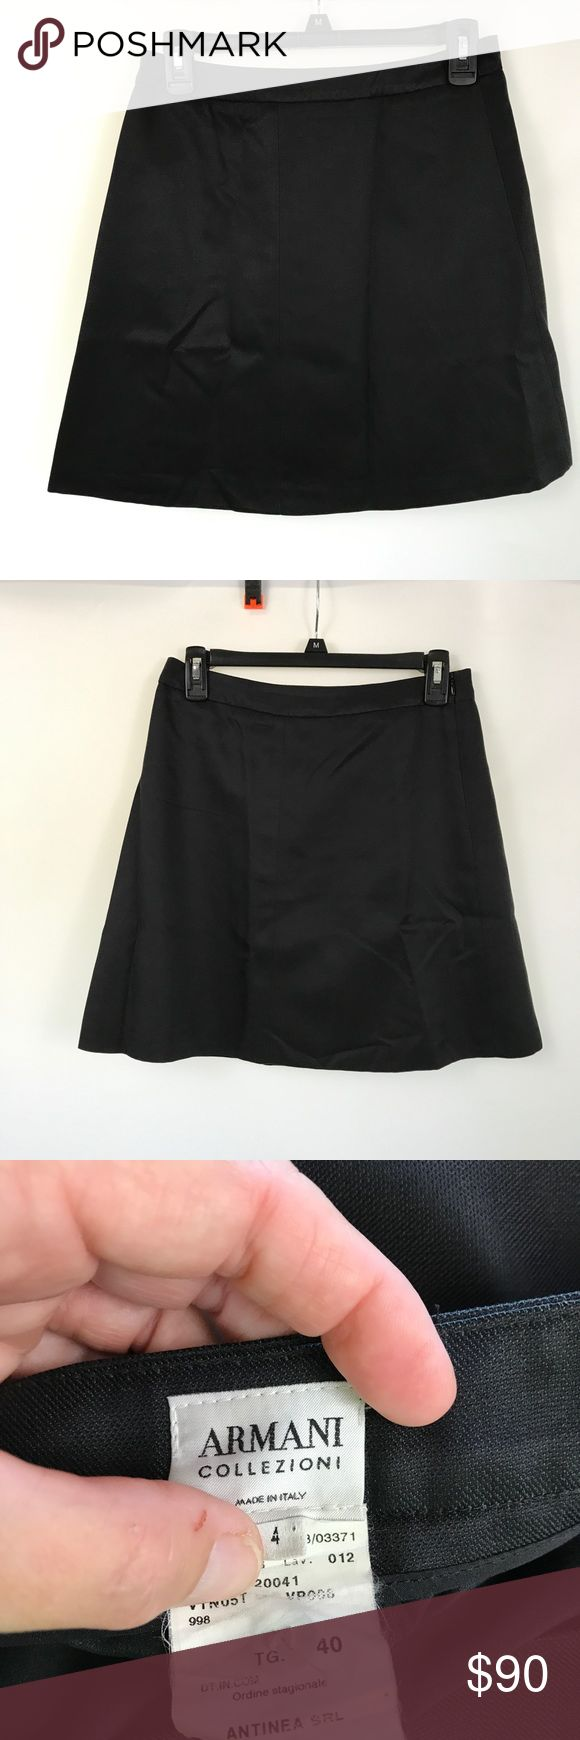 "Armani Collezioni Black Silk Casual Skirt Size 4 Armani Collezioni Black Casual Skirt Size 4  ARMANI COLLEZIONI Womens Sz 4 40 (IT) Black Silk Blend Casual Skirt  Features:  - A-Line silhouette - Short - Black - 65% Cotton, 35% Silk - Dry clean only  Approximate measurements:  Waist: 29"" Length: 18""  Condition: Very good pre-owned condition. No flaws. Retail $495 Armani Collezioni Skirts A-Line or Full"